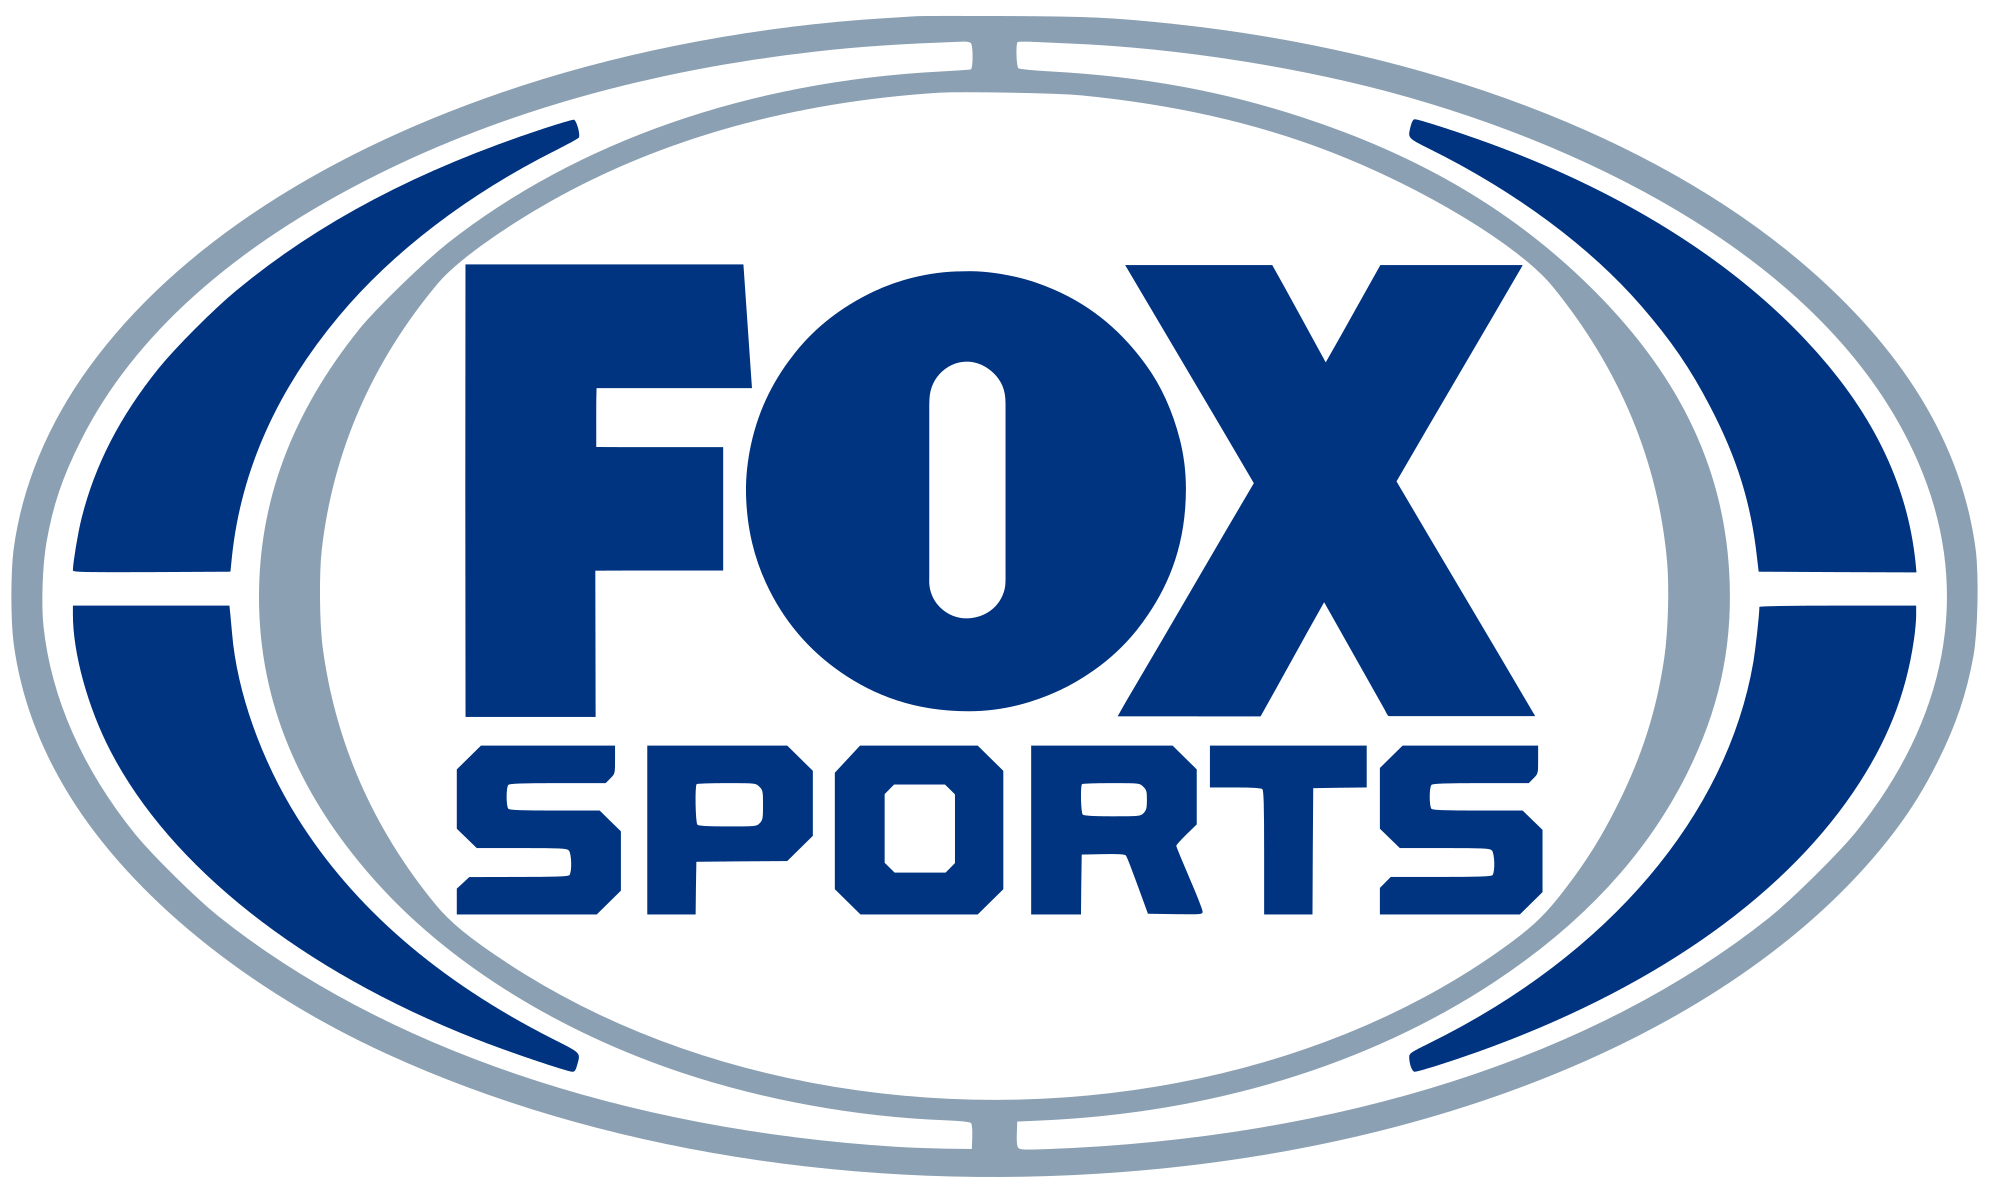 Sports logo png. File fox svg wikimedia